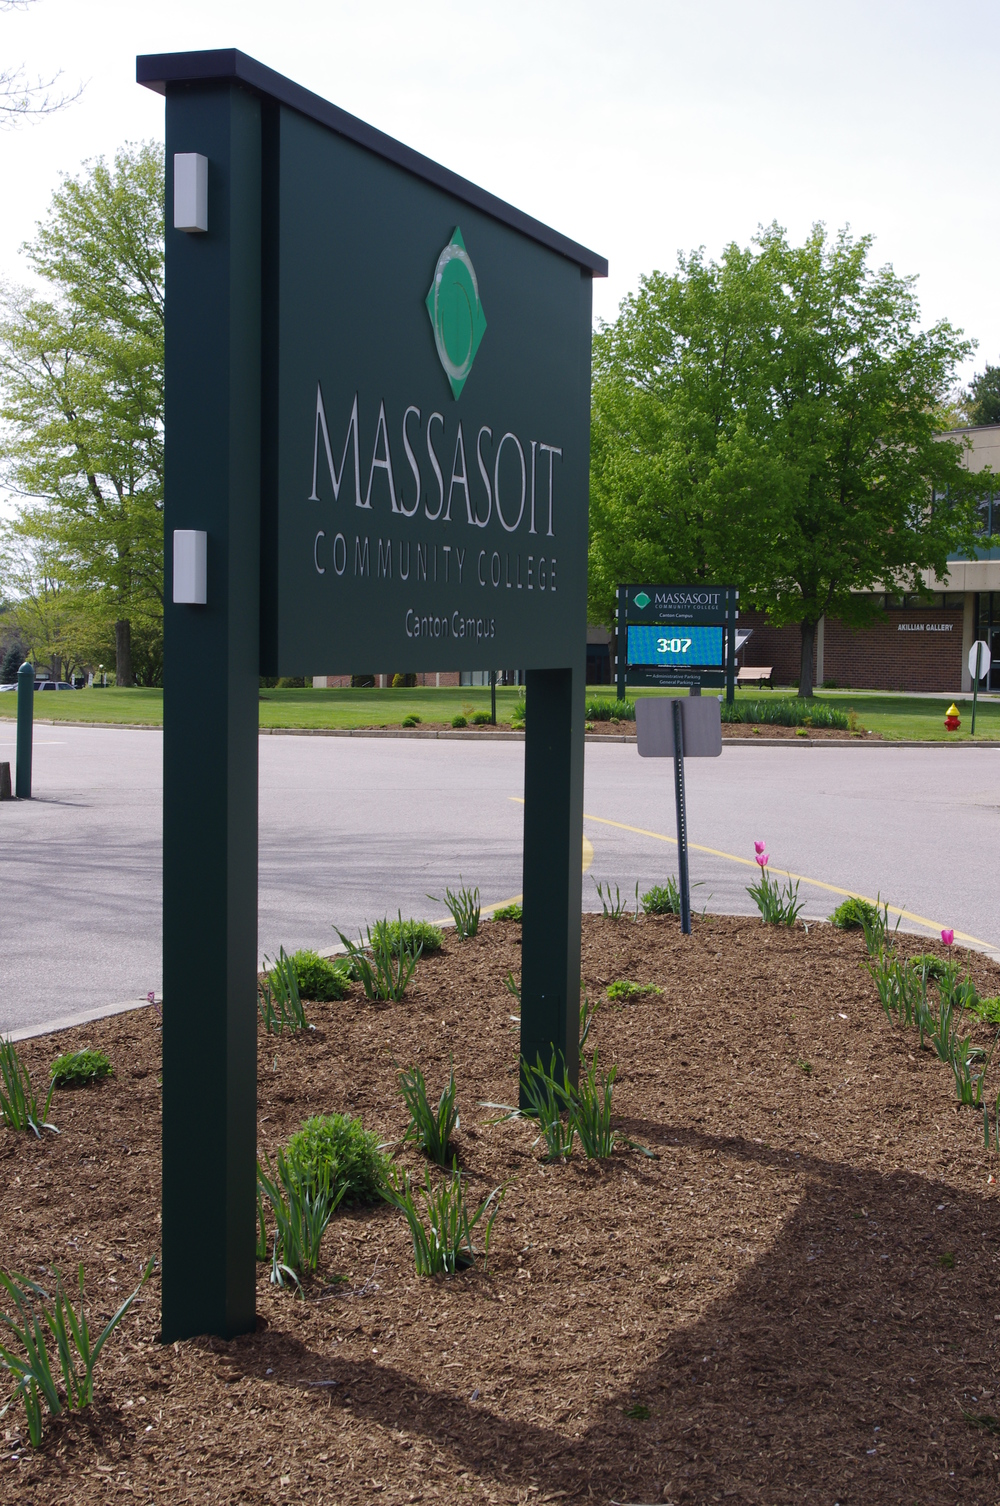 MASSASOIT_7_WEBSITE.JPG